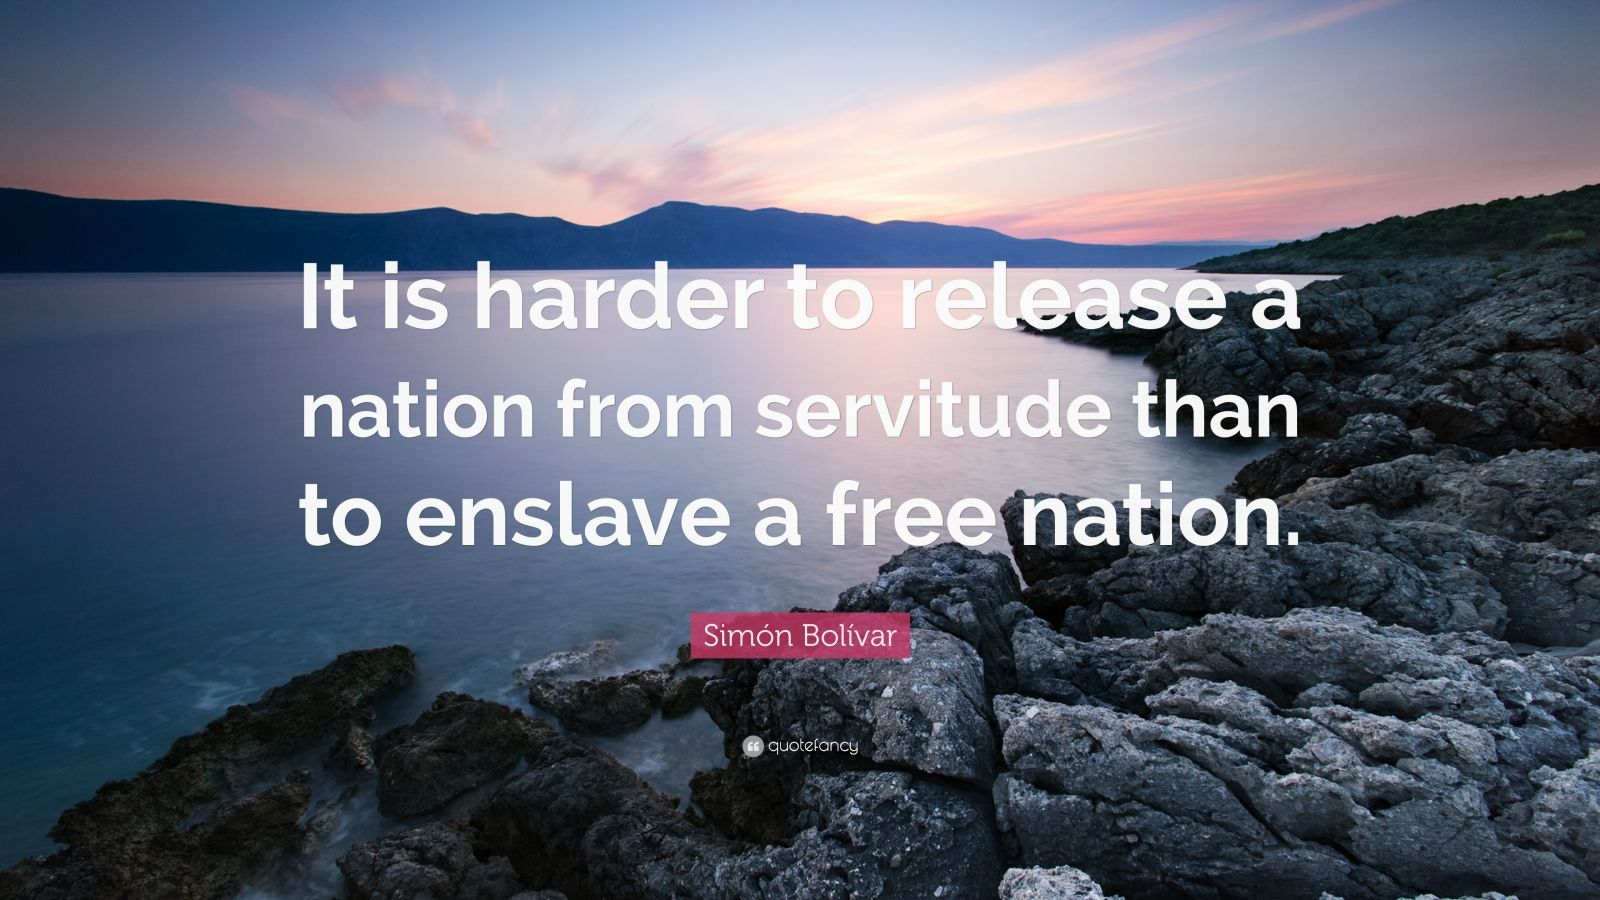 """Simón Bolívar Quote: """"It is harder to release a nation from servitude than to enslave a free nation."""""""